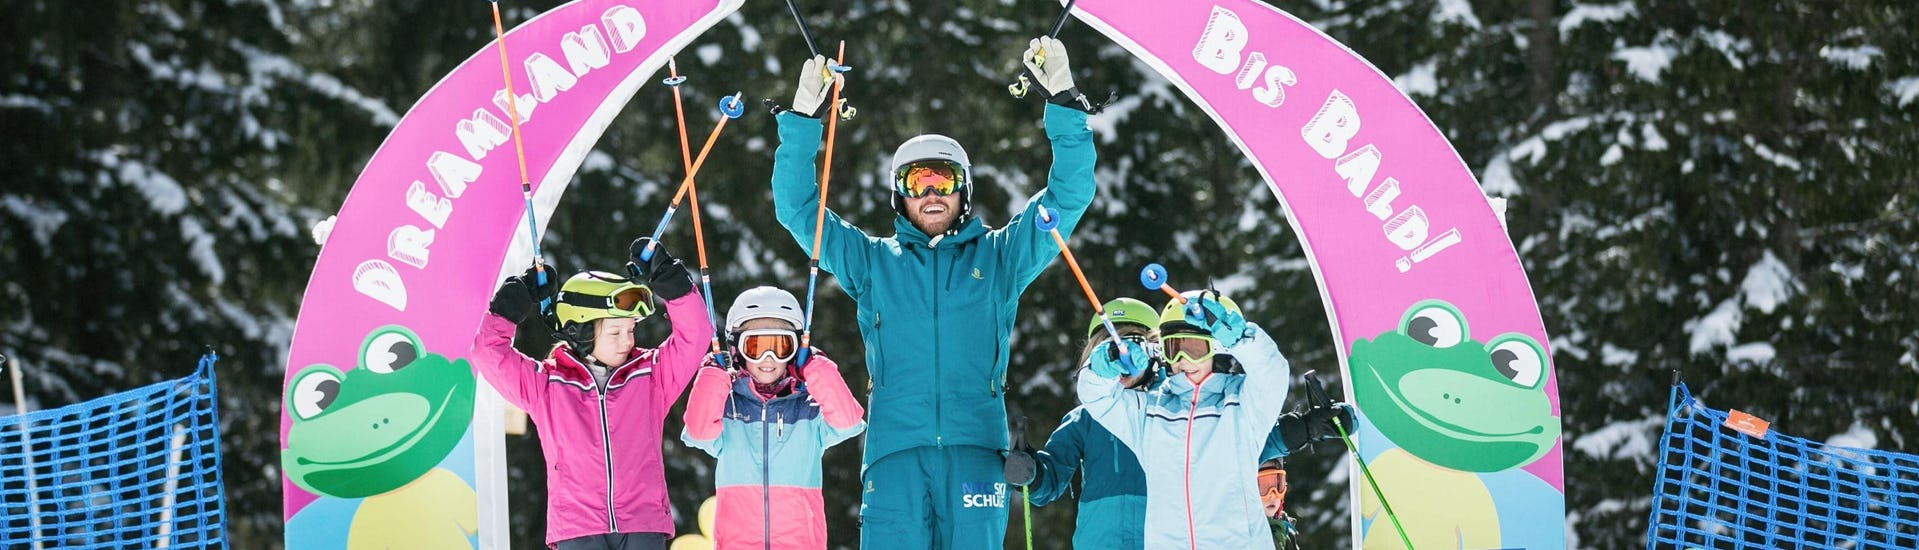 A group of happy children during ski lessons organised by the NTC Skischule Oberstdorf in the ski resort Oberstdorf.